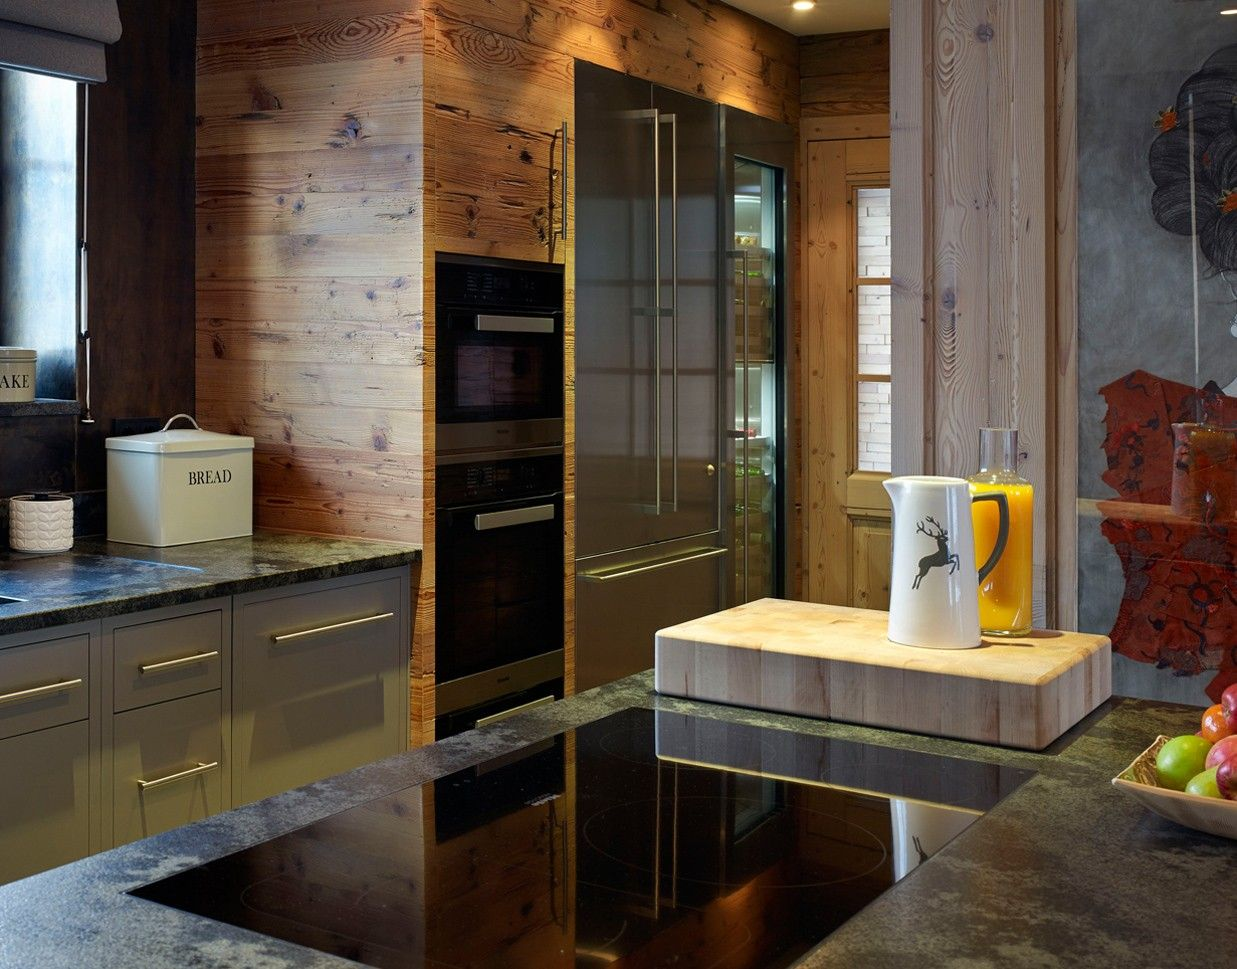 Completed in December 2013, this luxury kitchen project was for a kitchen in a private client's chalet in the Austrian Tyrol.